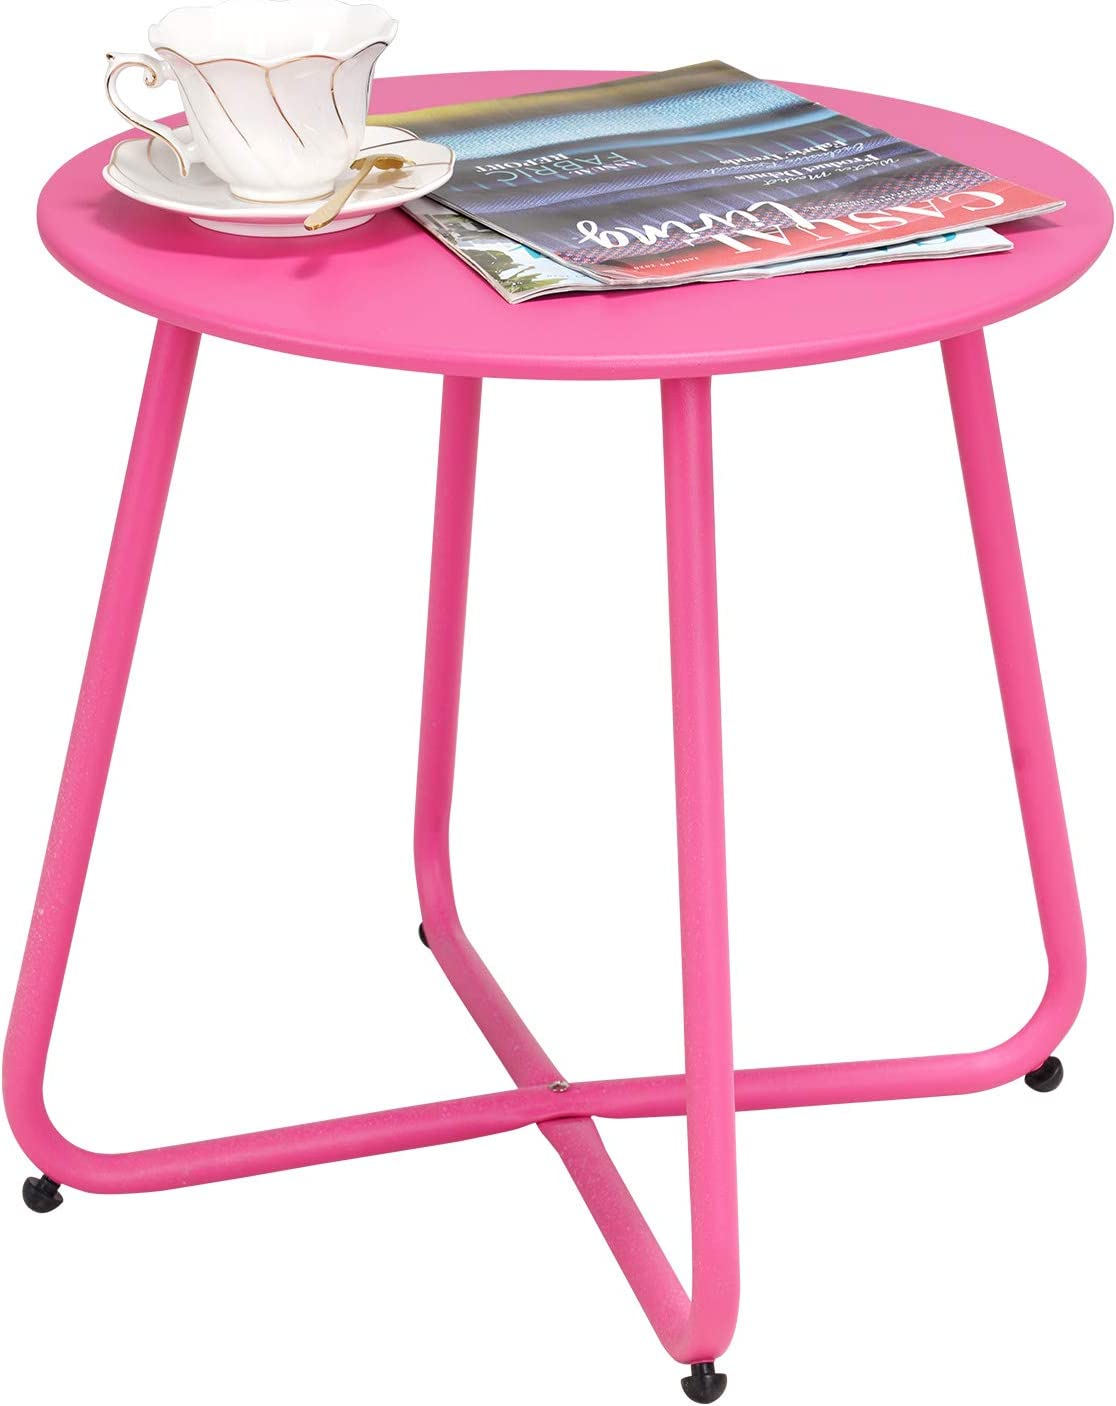 Grand Patio Steel Patio Side Table, Weather Resistant Outdoor Round End Table, Pink